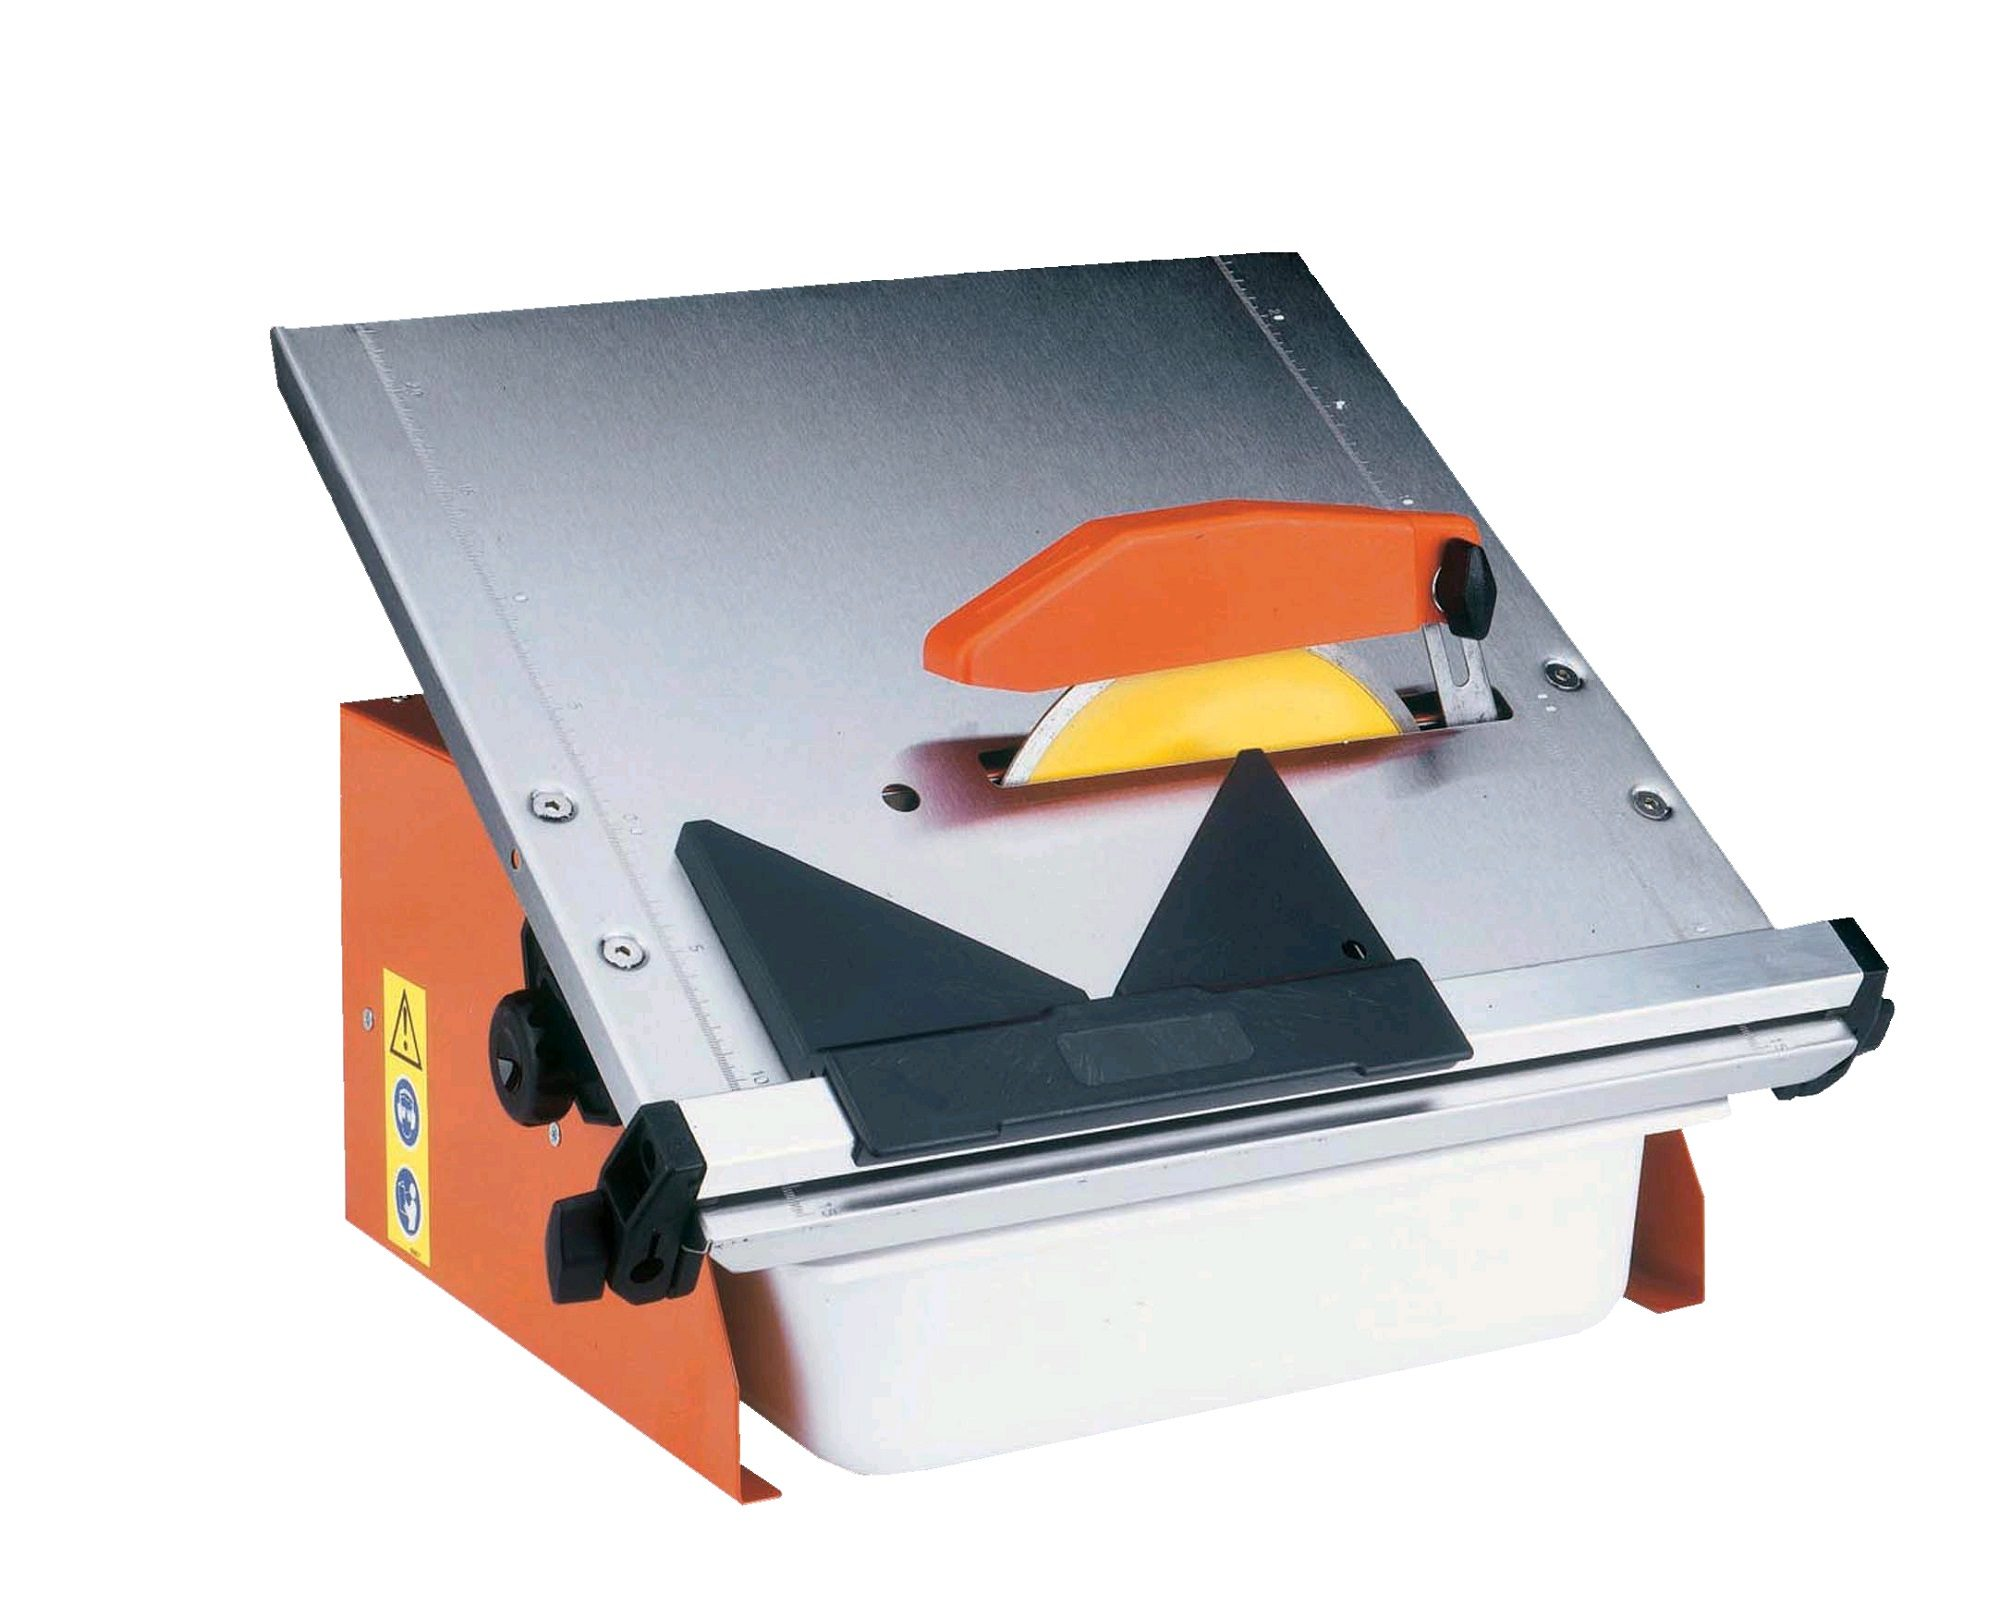 Belle magiktile 180 with orange metal casing, yellow circular blade, orange blade protector and silver metal cutting table